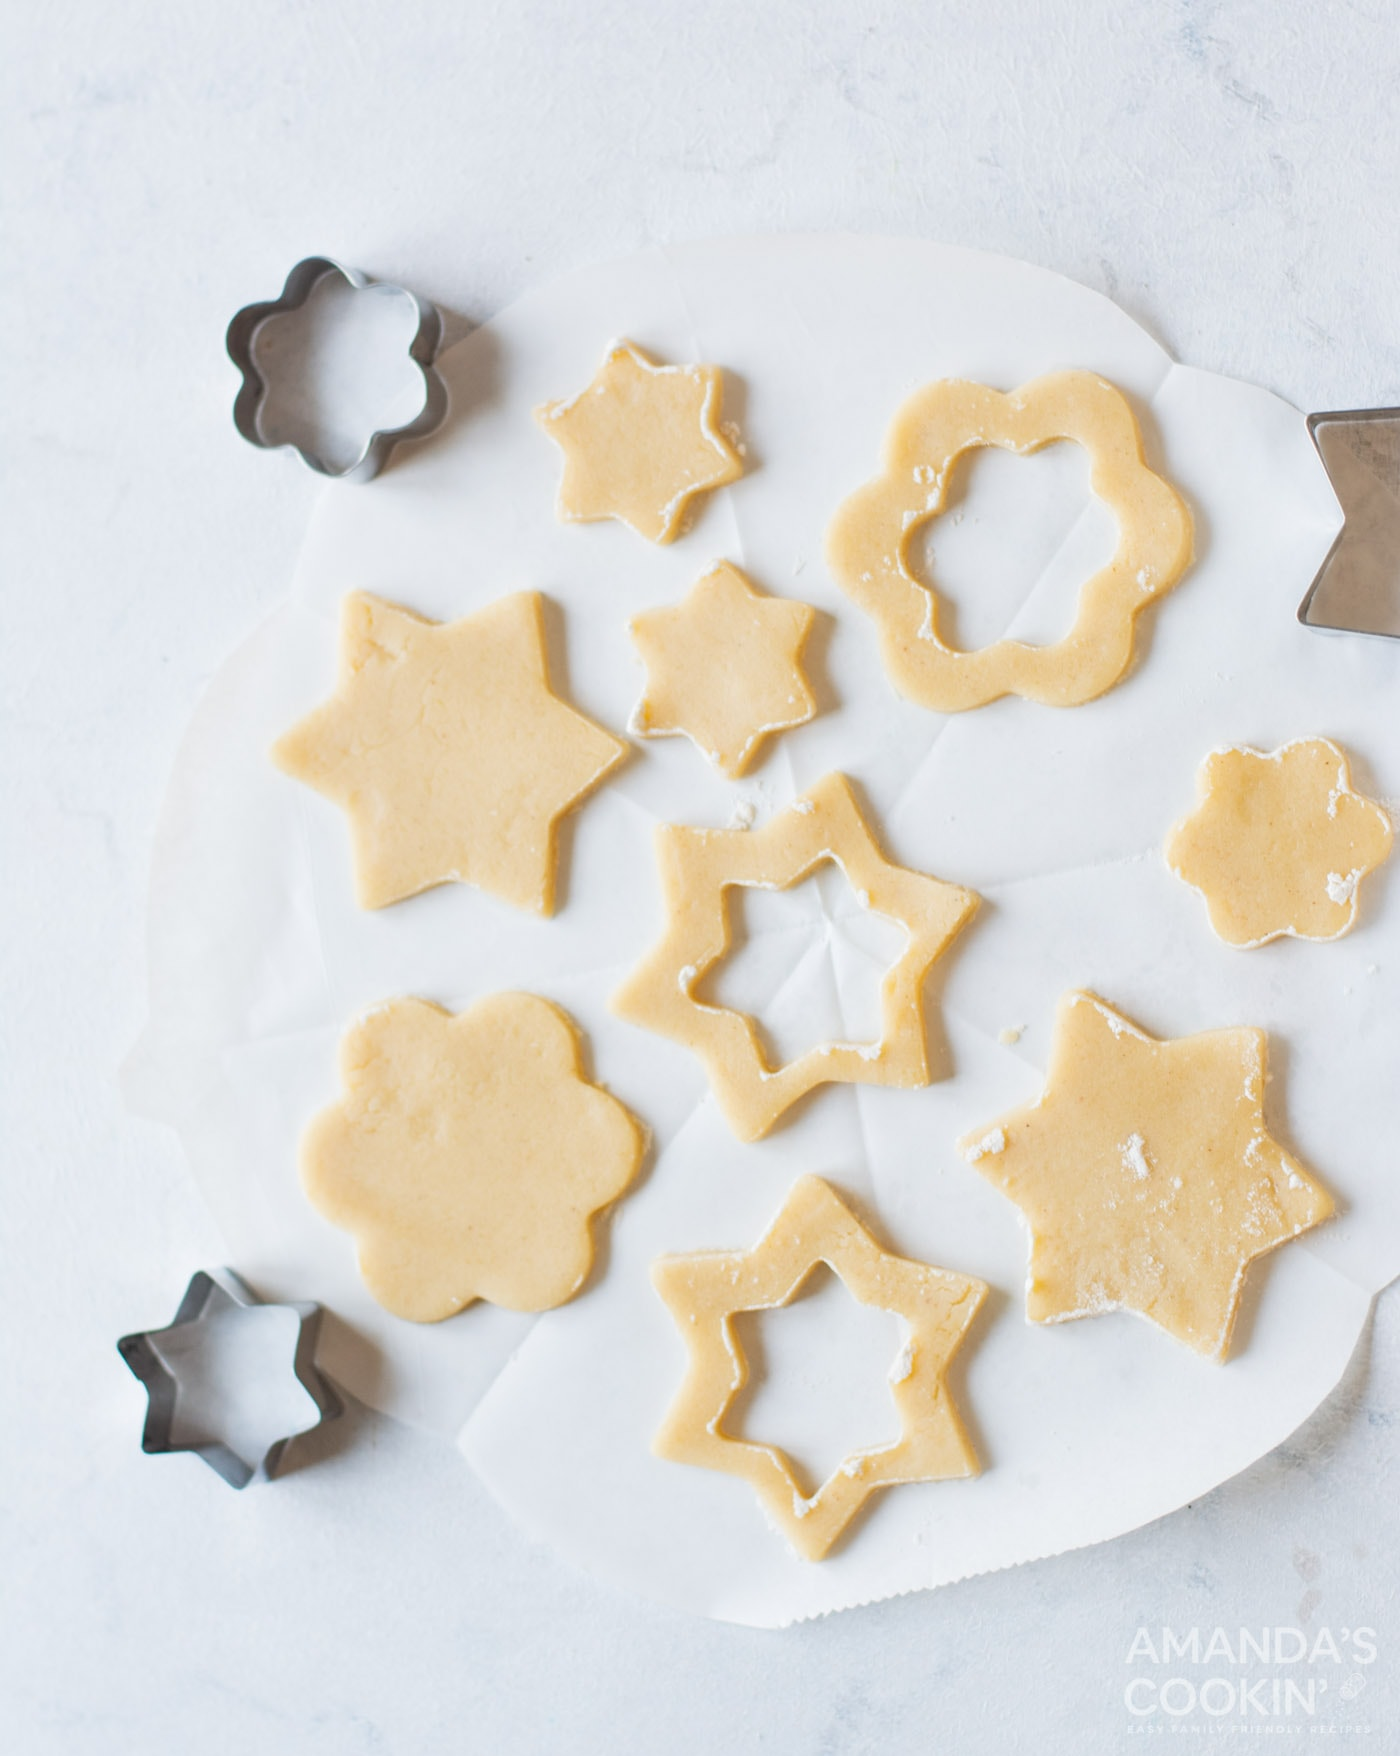 cookie dough cut by cookie cutters into shapes